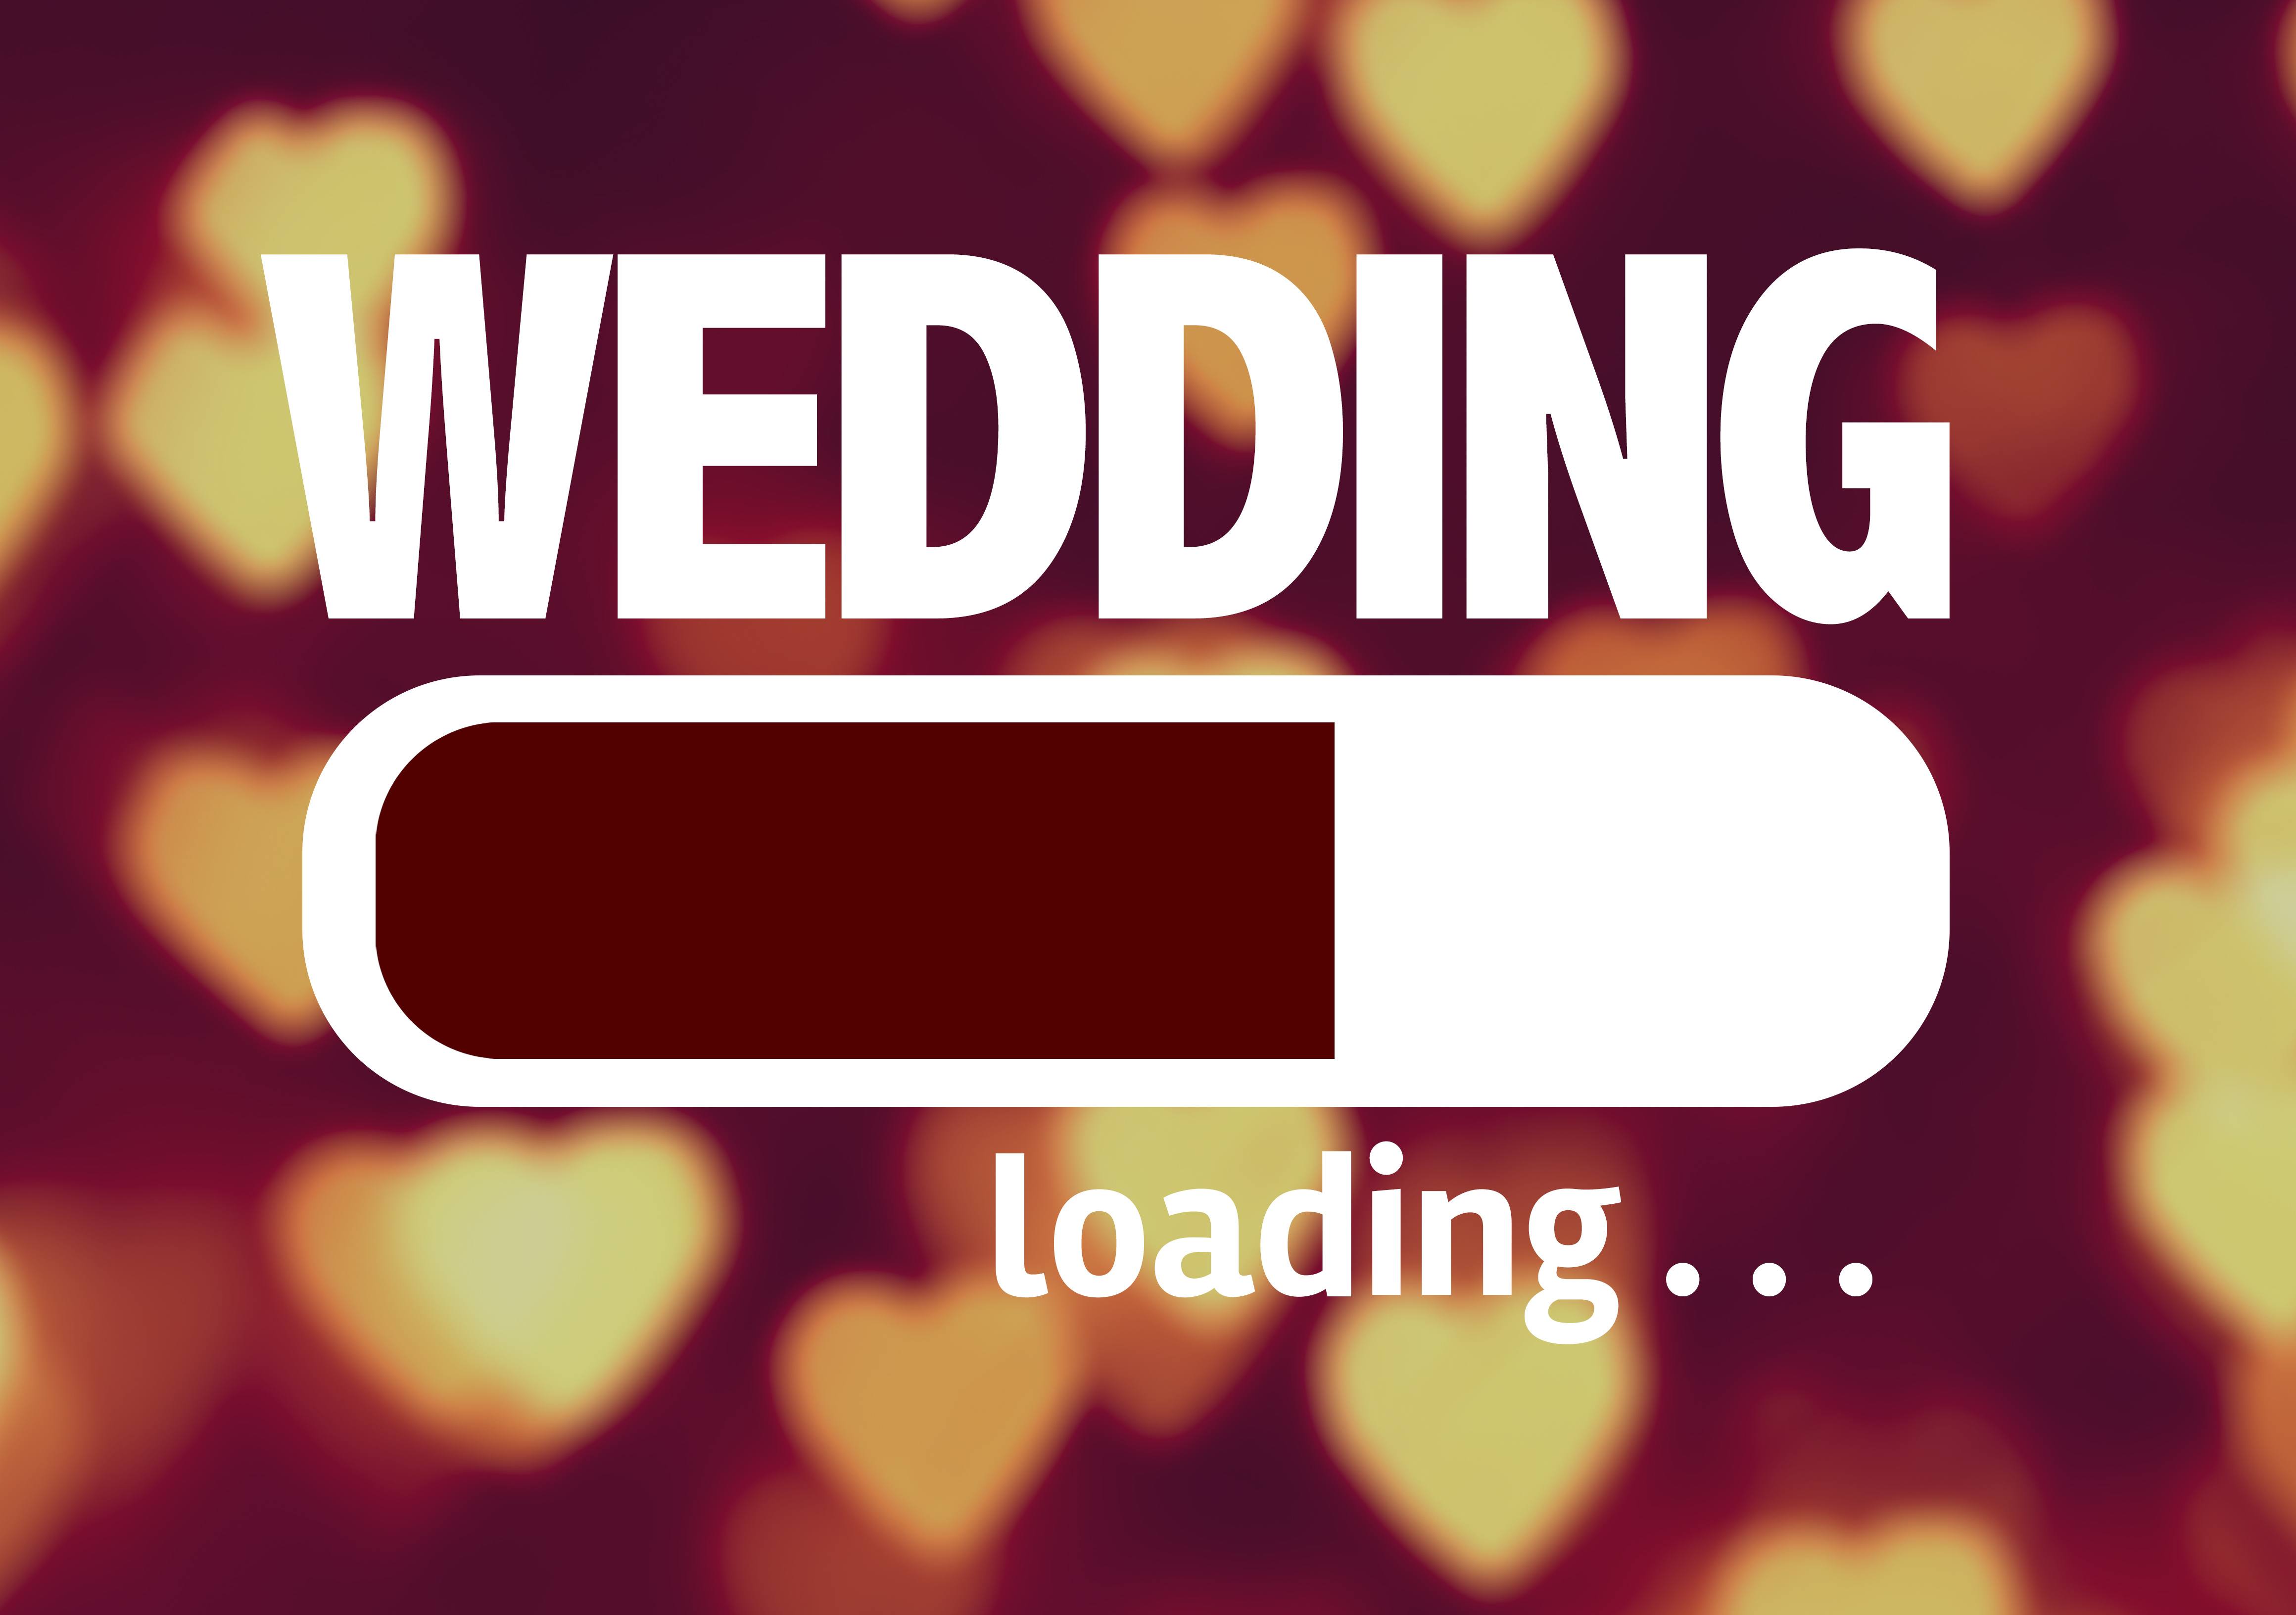 The word wedding with a loading bar underneath it